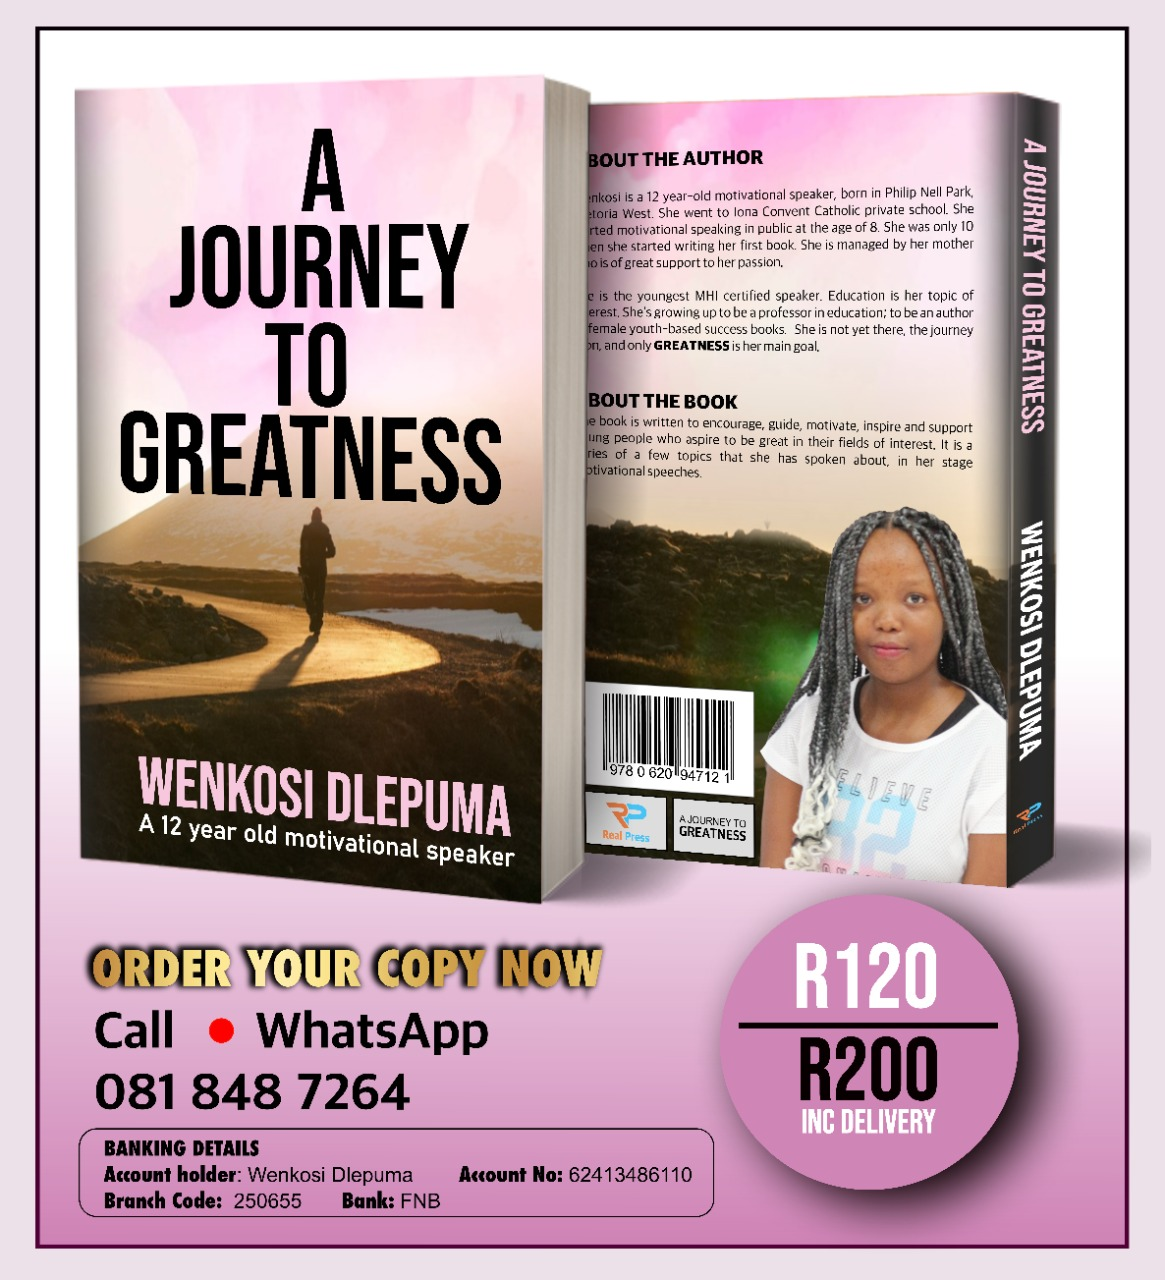 A Journey to Greatness